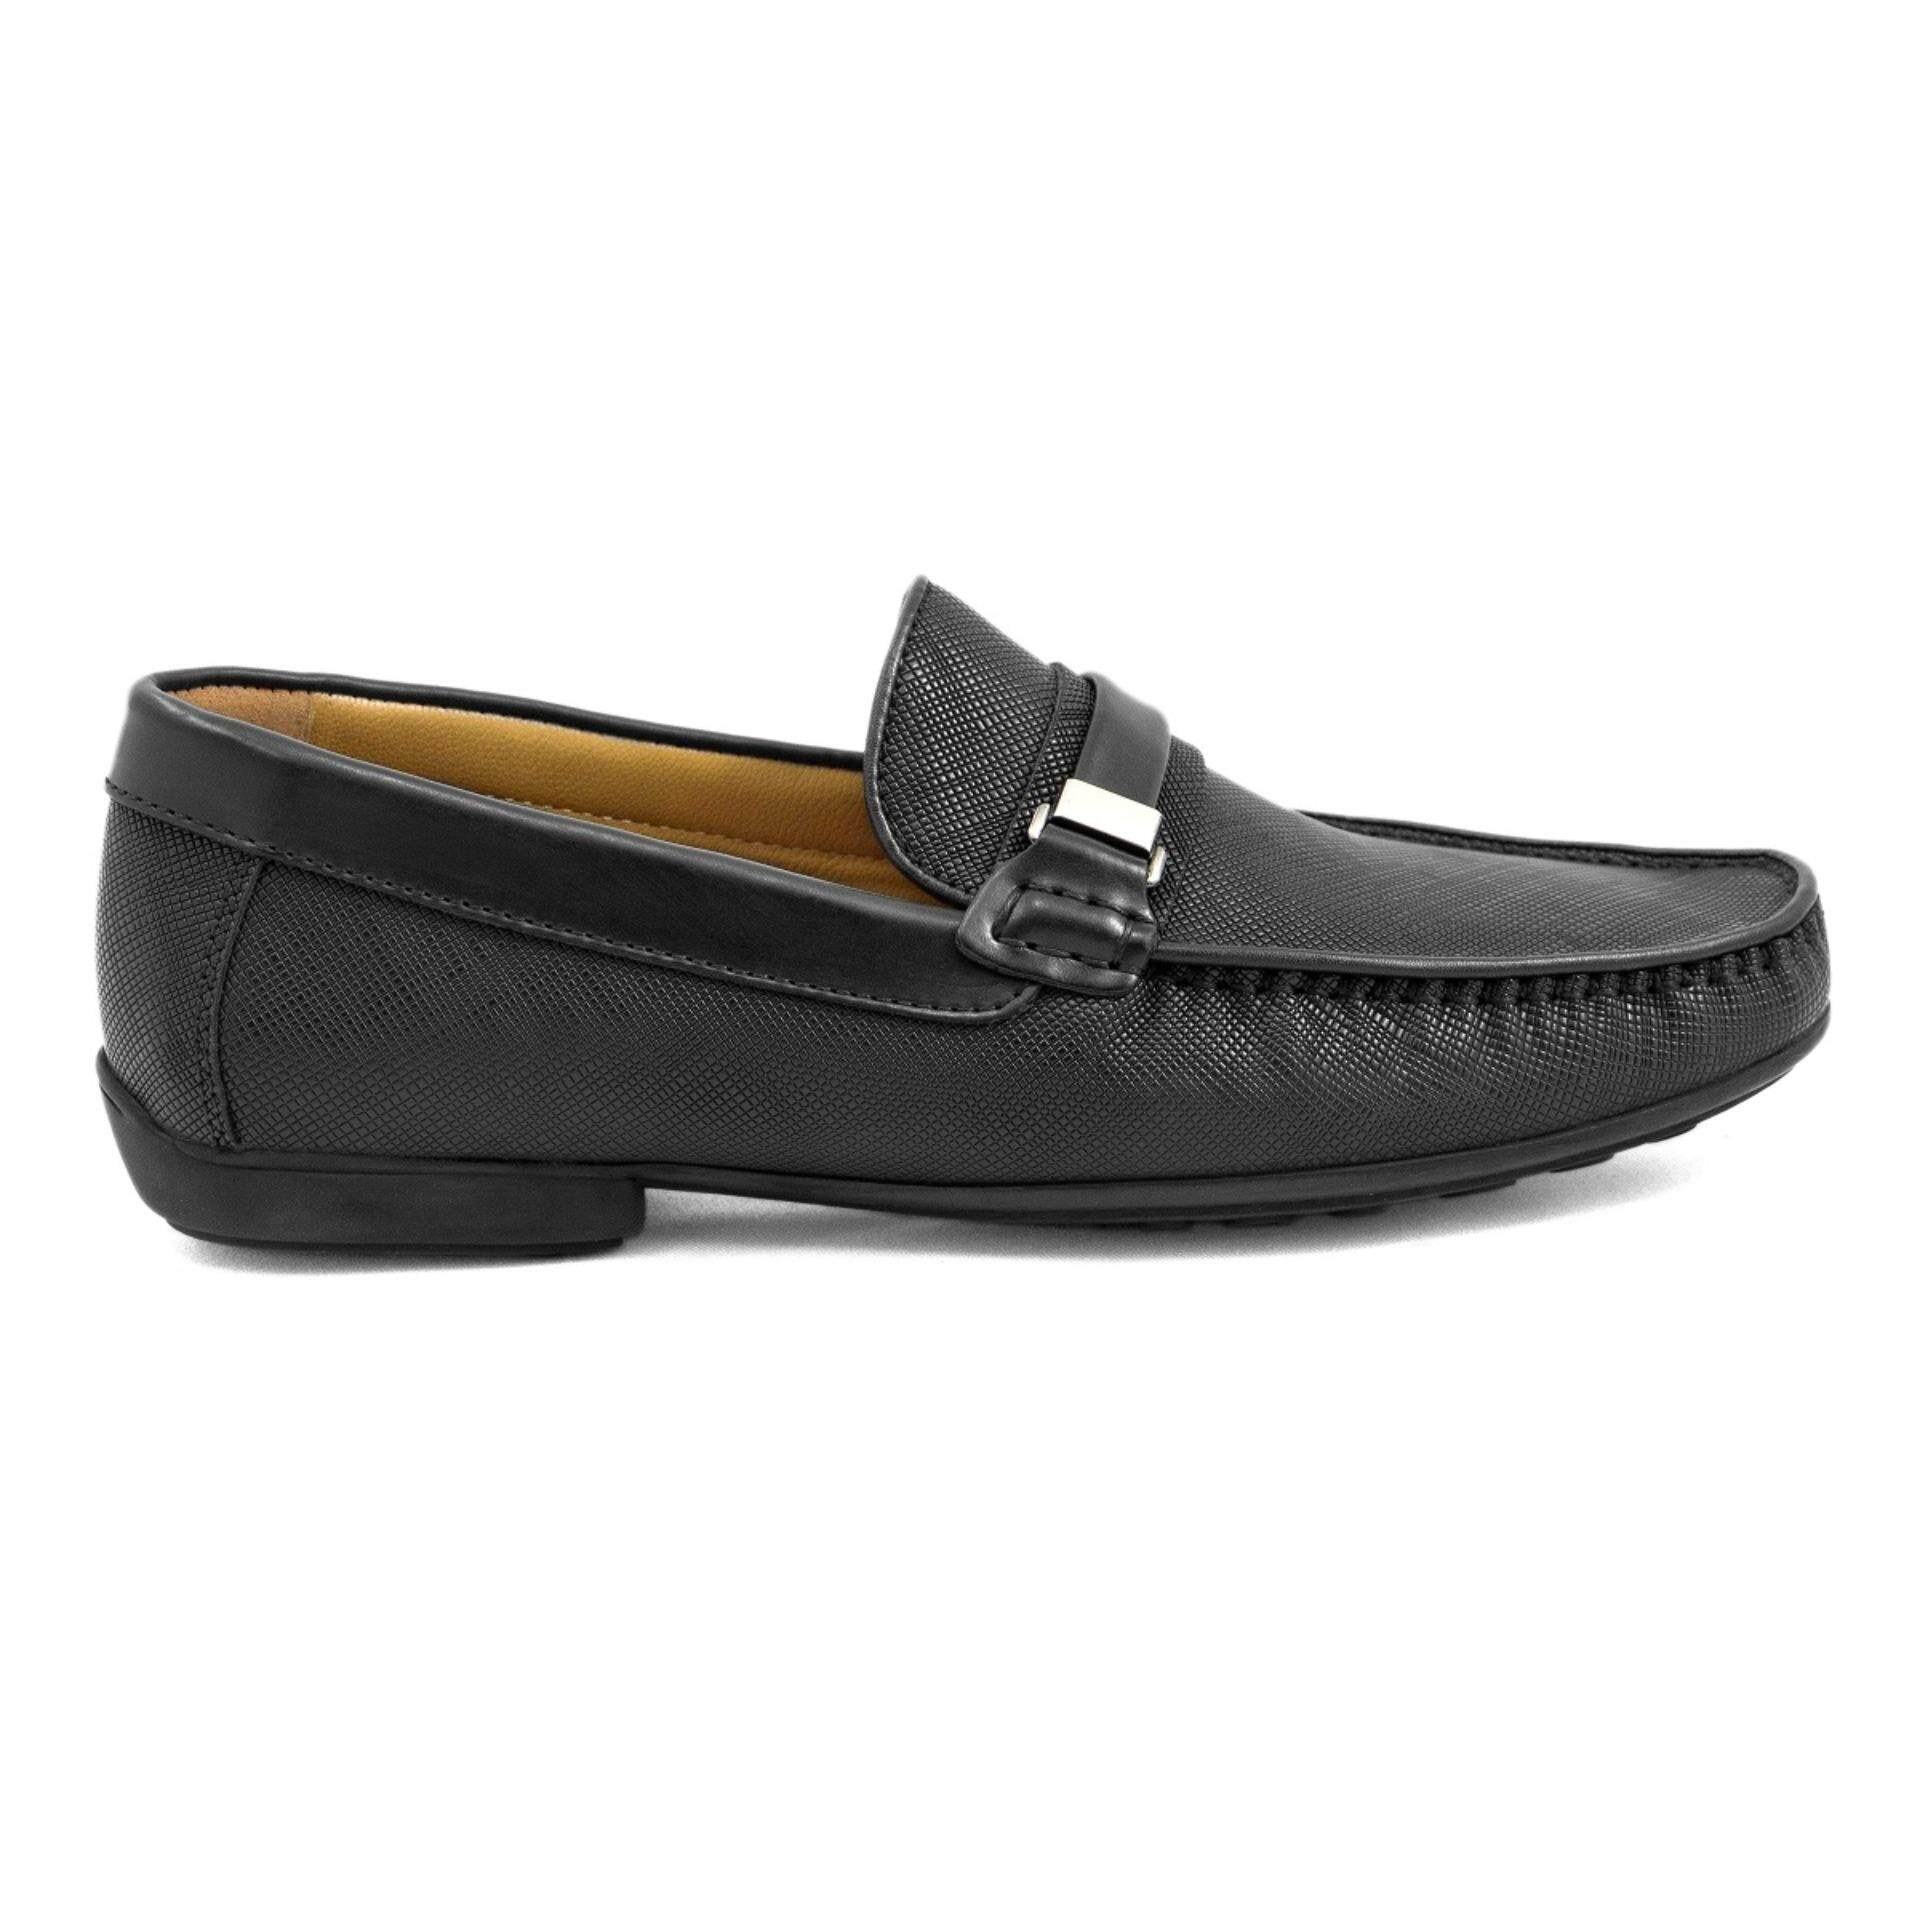 Tomaz C255 Buckled Loafers (Black)